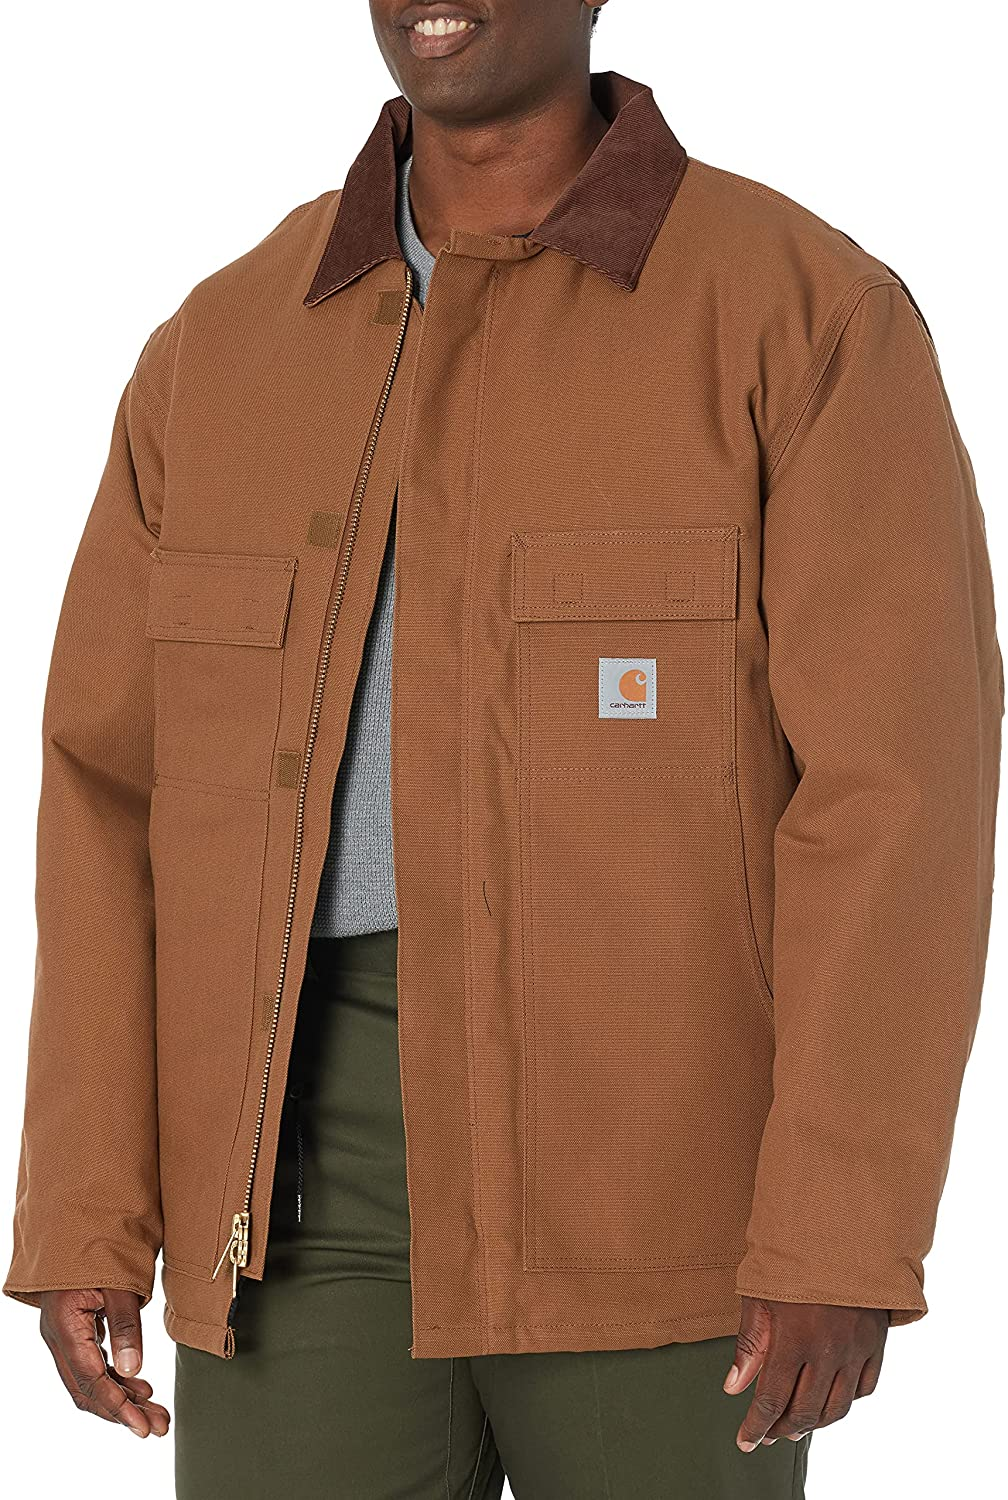 Carhartt Arlington Mall Men's Big Tall Super special price Arctic Traditional Co Lined Duck Quilt